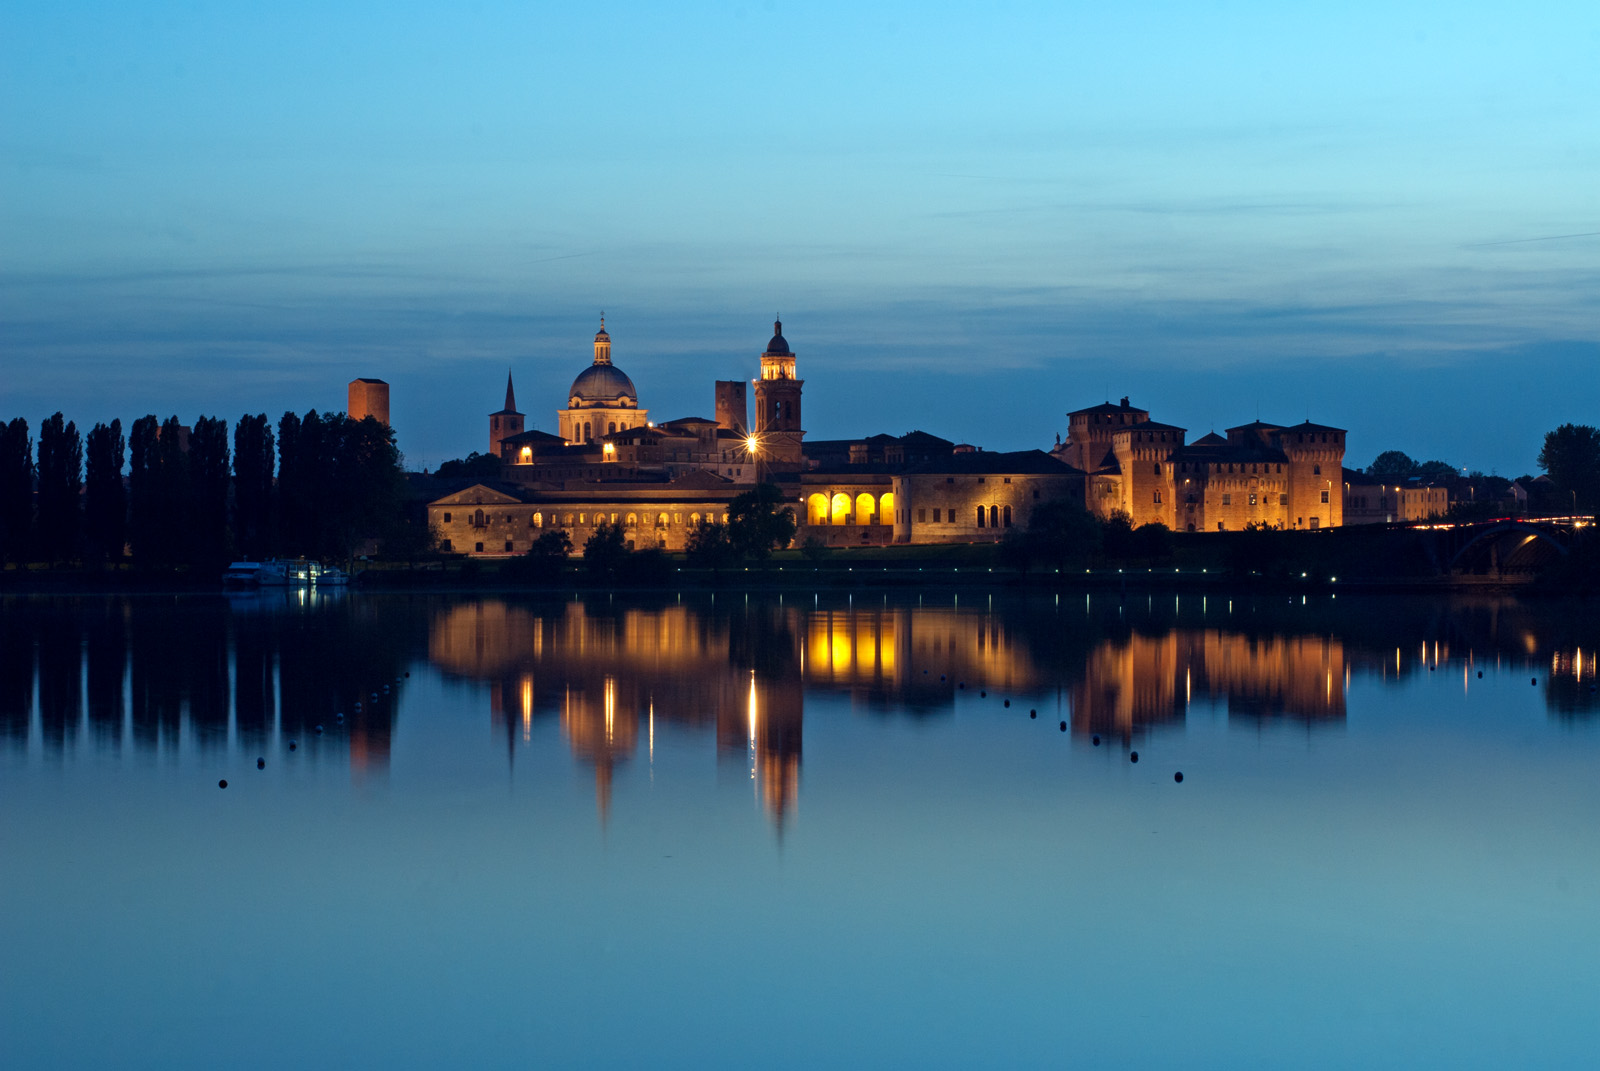 Mantova Italy  city photos gallery : ... mantova italy underrated cities best of italy northern italy top 10